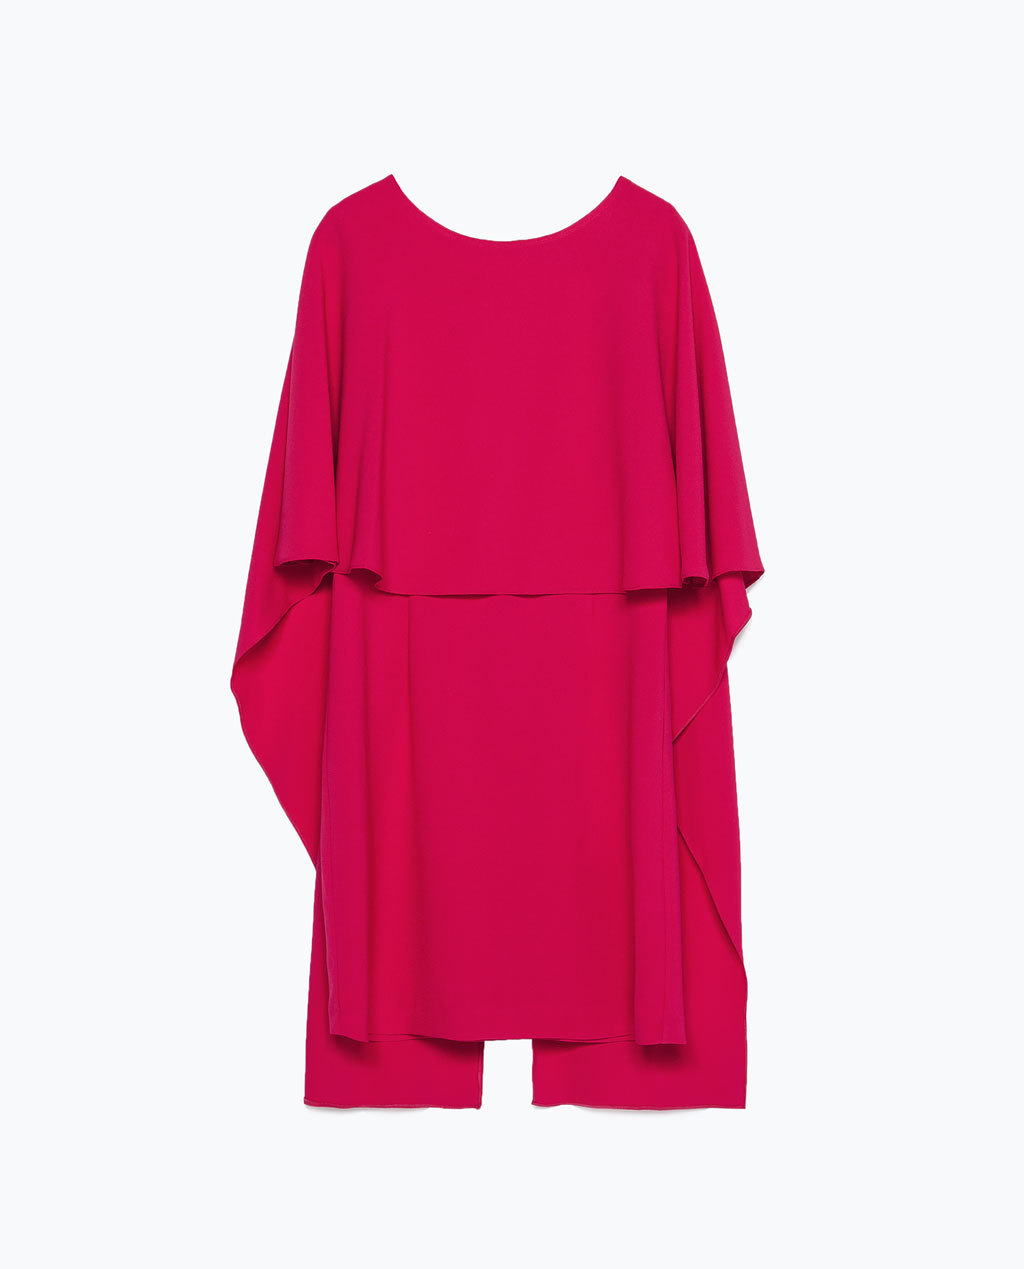 Cape Dress With Low Back - style: tunic; length: mini; neckline: round neck; sleeve style: angel/waterfall; fit: loose; pattern: plain; back detail: back revealing; predominant colour: hot pink; occasions: evening; fibres: polyester/polyamide - stretch; sleeve length: half sleeve; texture group: crepes; pattern type: fabric; season: s/s 2015; wardrobe: event